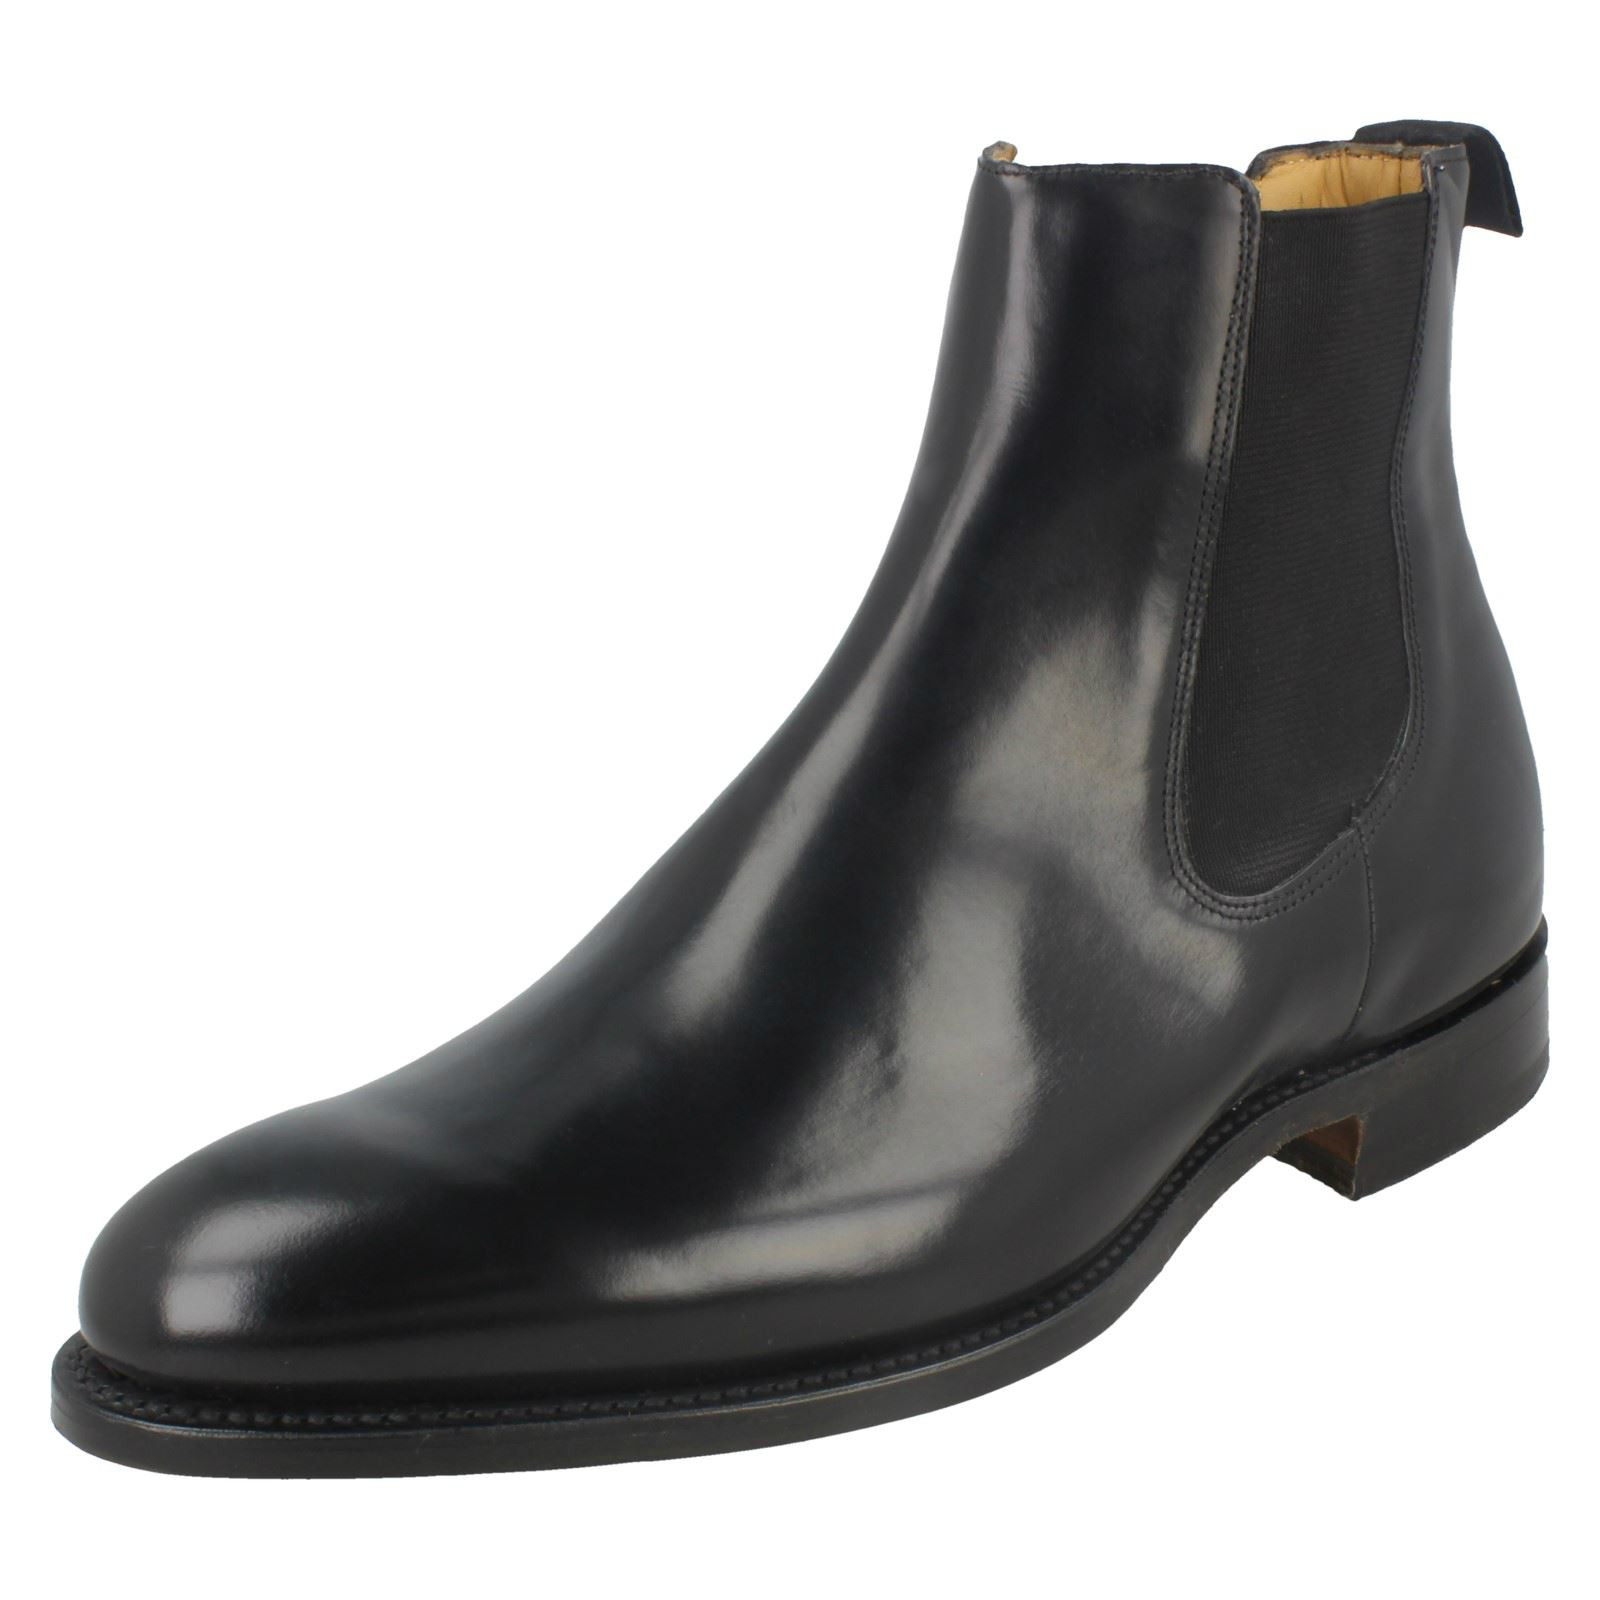 nero Welted Boots Barker Mens Bedale Chelsea Shine Sole pelle in Slip On Hi Formal AZxqEnO